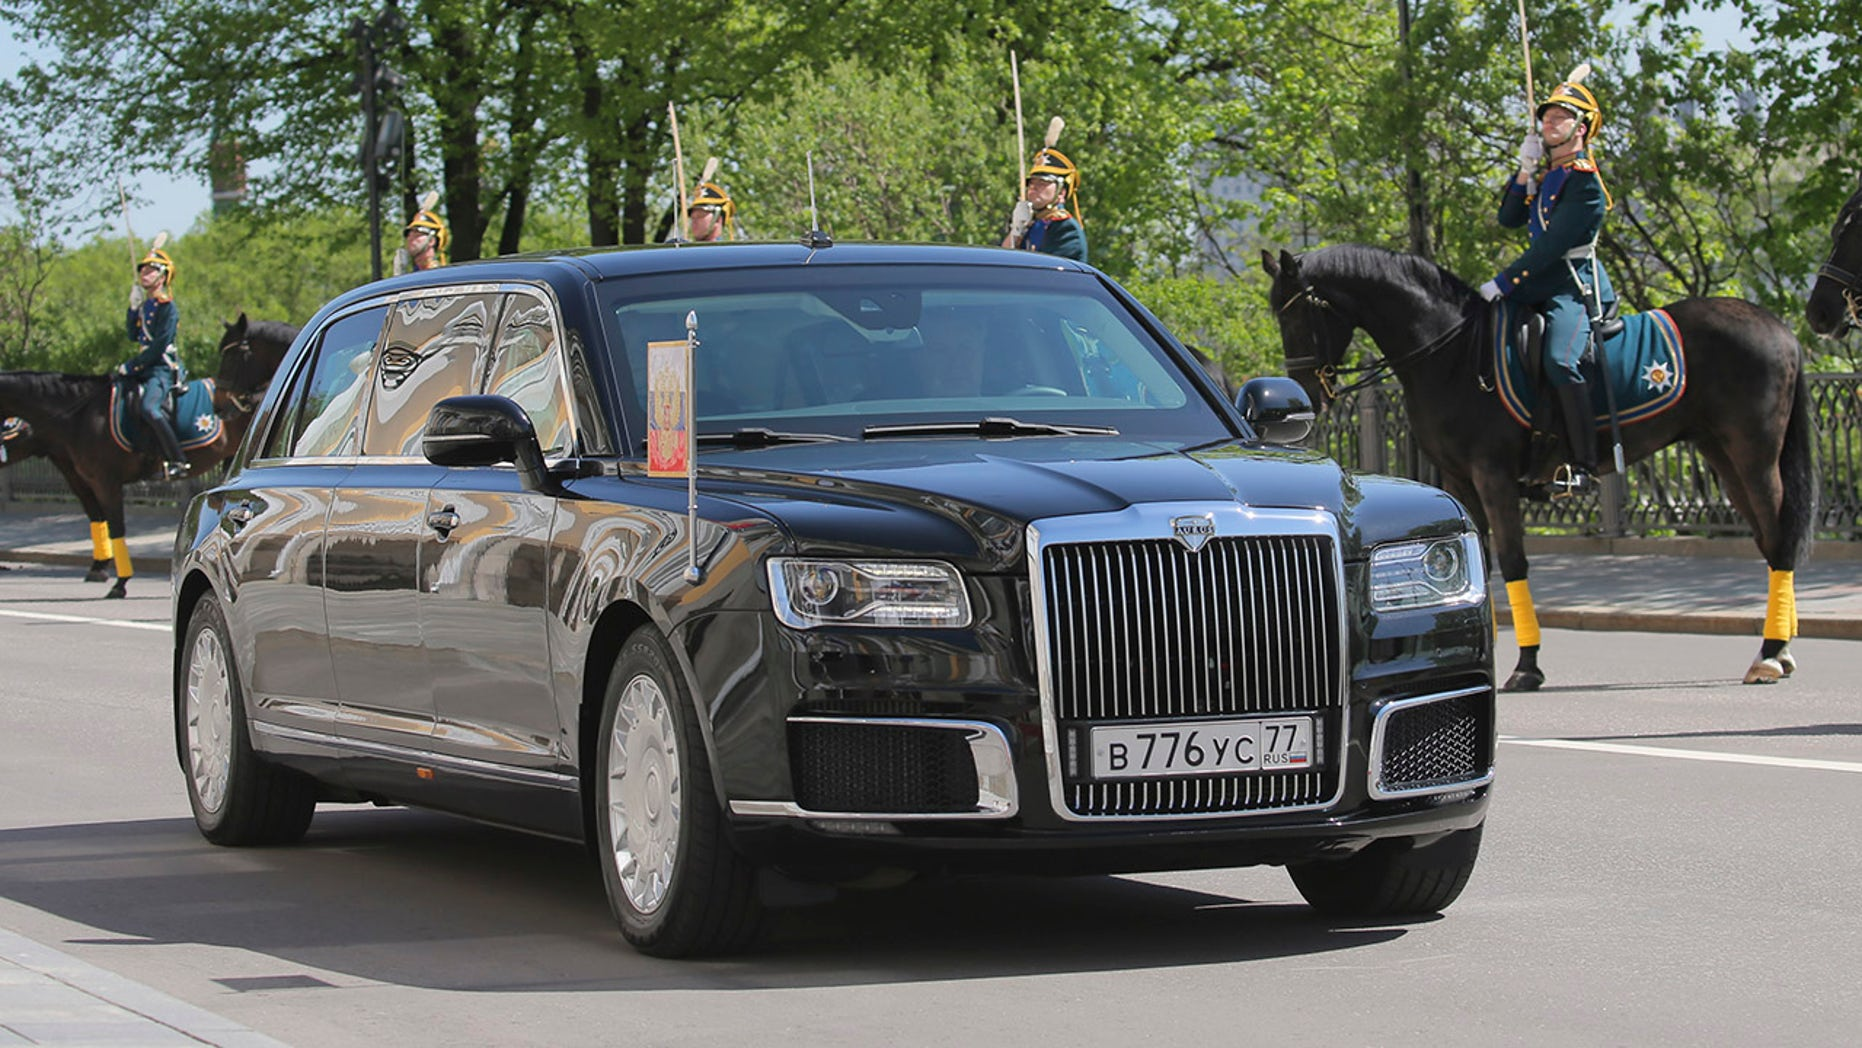 One of Russia's new Presidential limousine is driven during the inauguration ceremony of Vladimir Putin, in Moscow, Russia, Monday, May 7, 2018. Putin took the oath of office for his fourth term as Russian president on Monday and promised to pursue an economic agenda that would boost living standards across the country. (Sergei Savostyanov, Sputnik, Kremlin Pool Photo via AP)